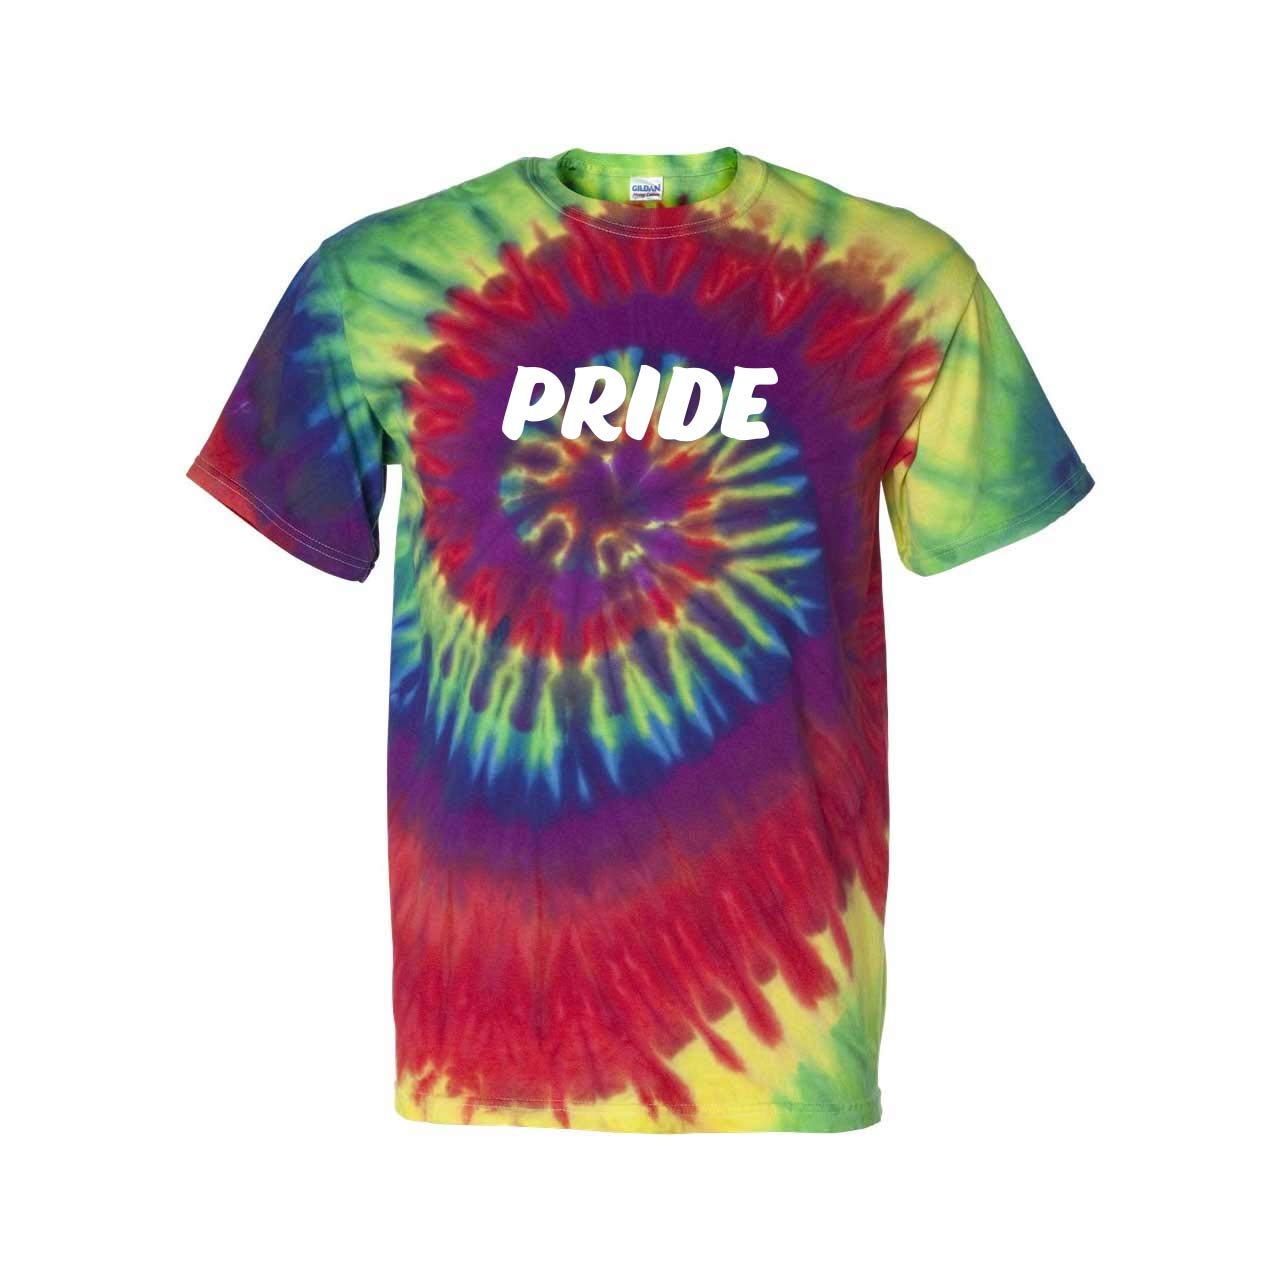 315549 tie dye short sleeve shirt one color one location imprint